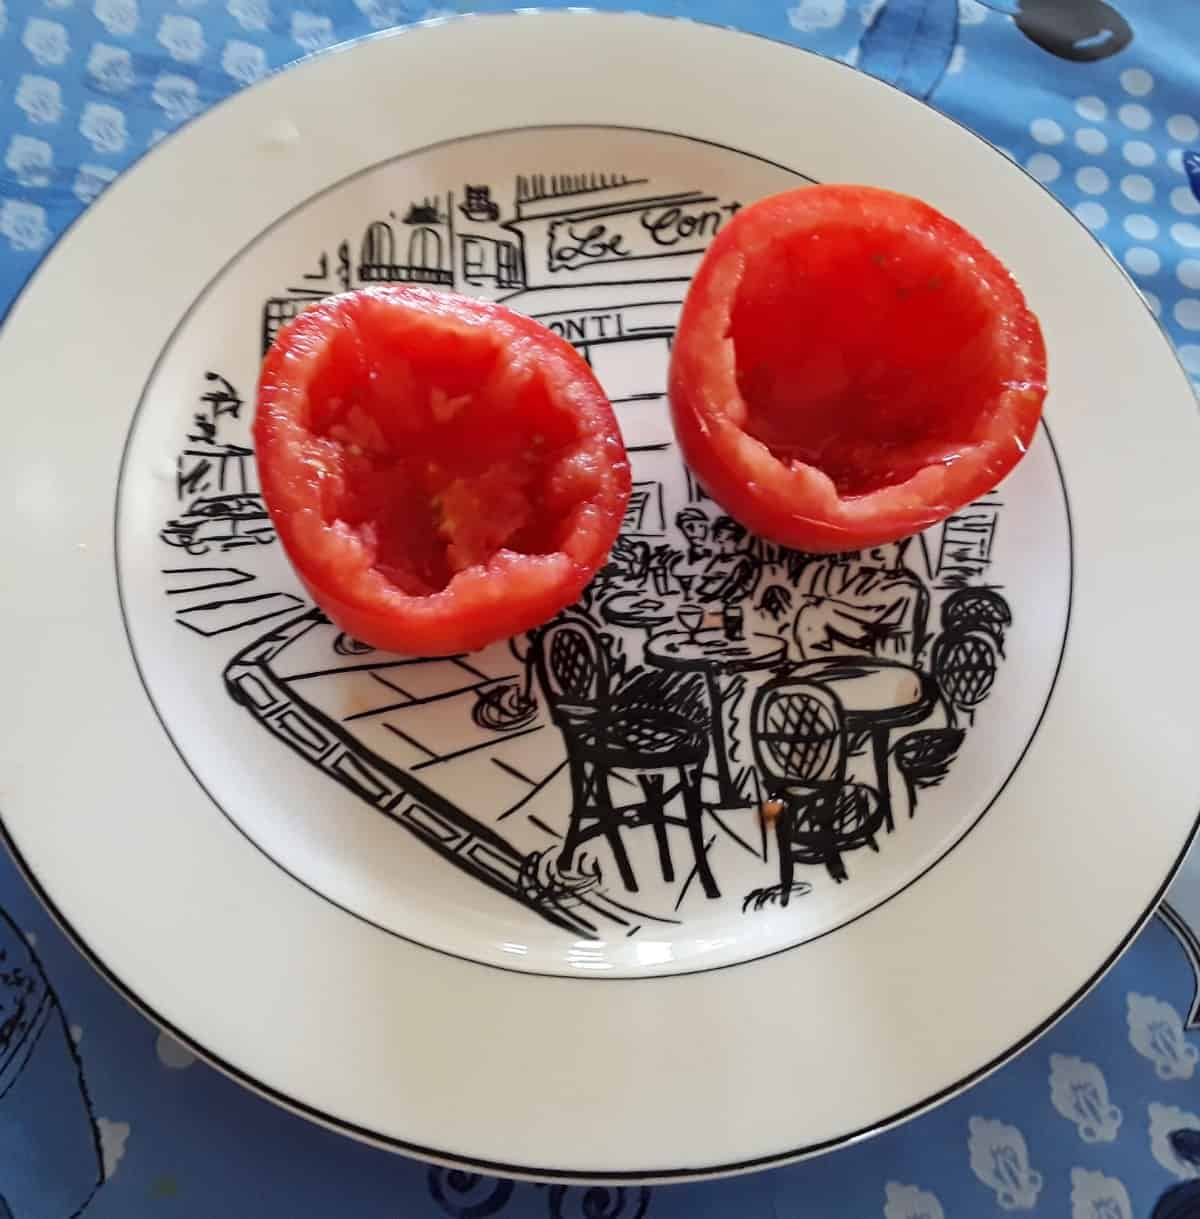 Roma tomato cut in halve and hollowed out on white plate.